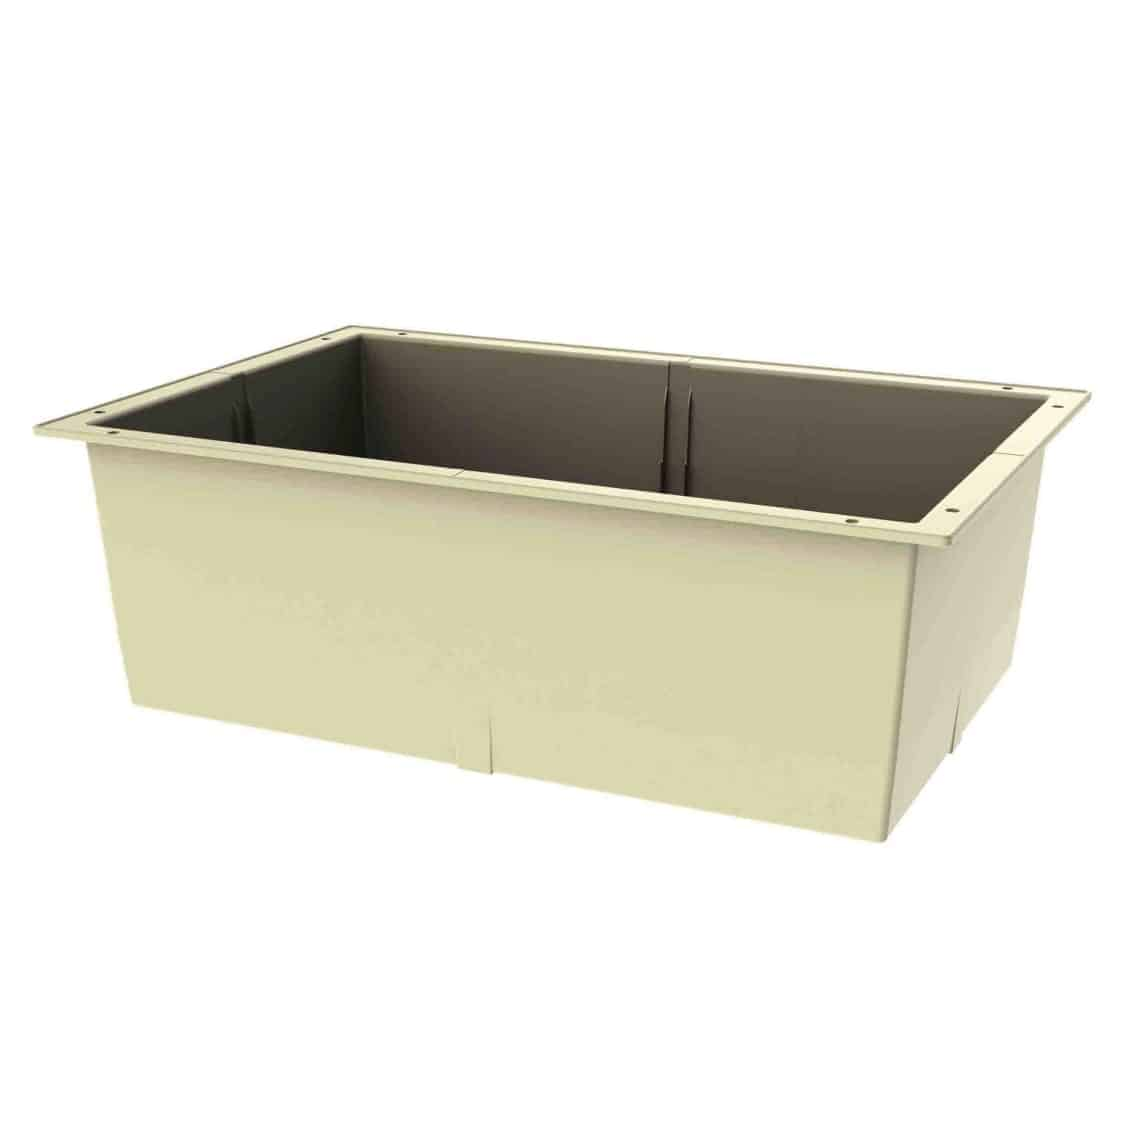 ABS dividable tray (Large)